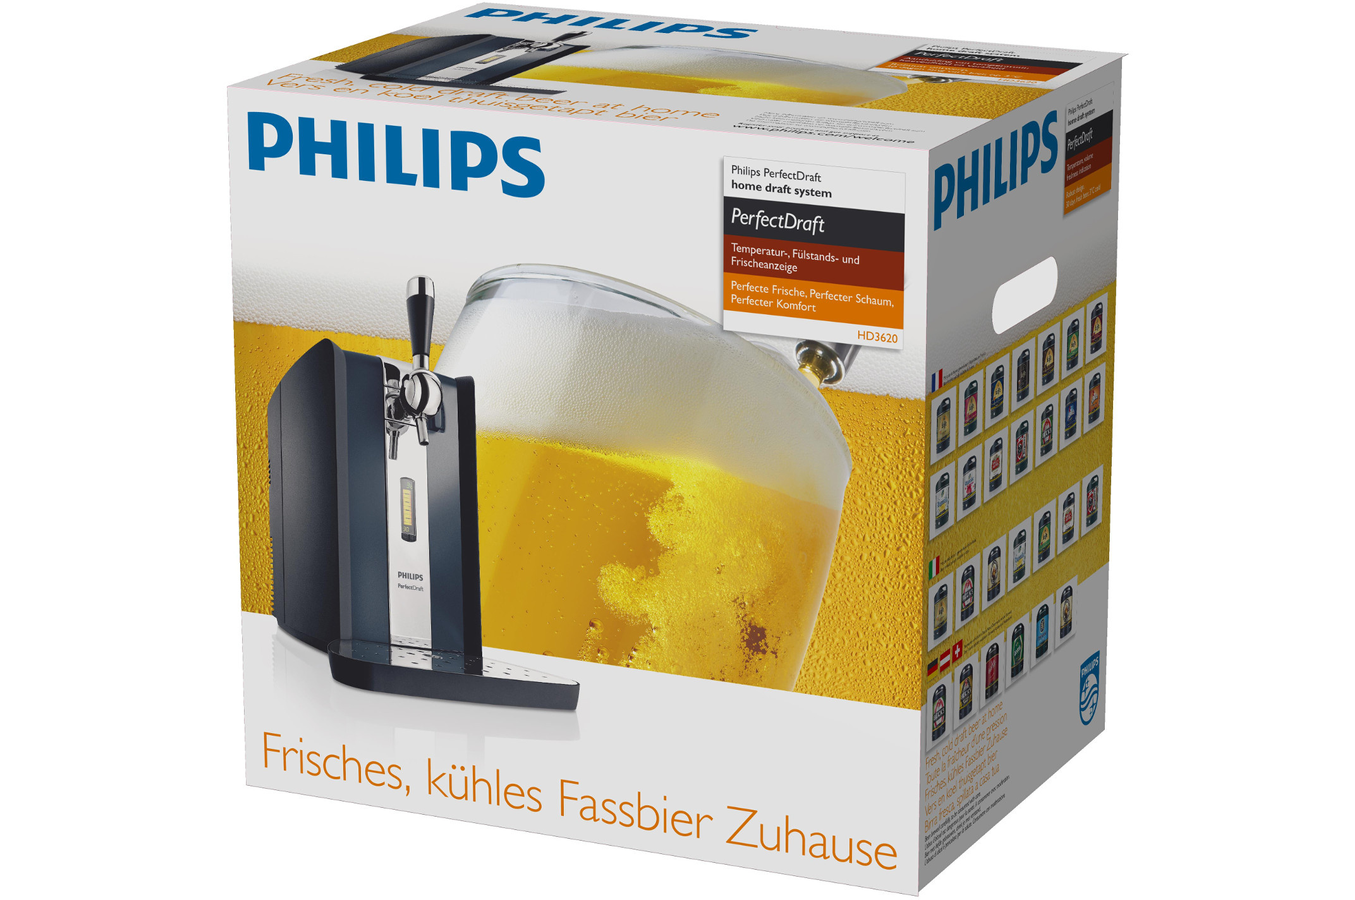 pompe a biere philips hd3620 25 perfectdraft hd3620 25 darty. Black Bedroom Furniture Sets. Home Design Ideas